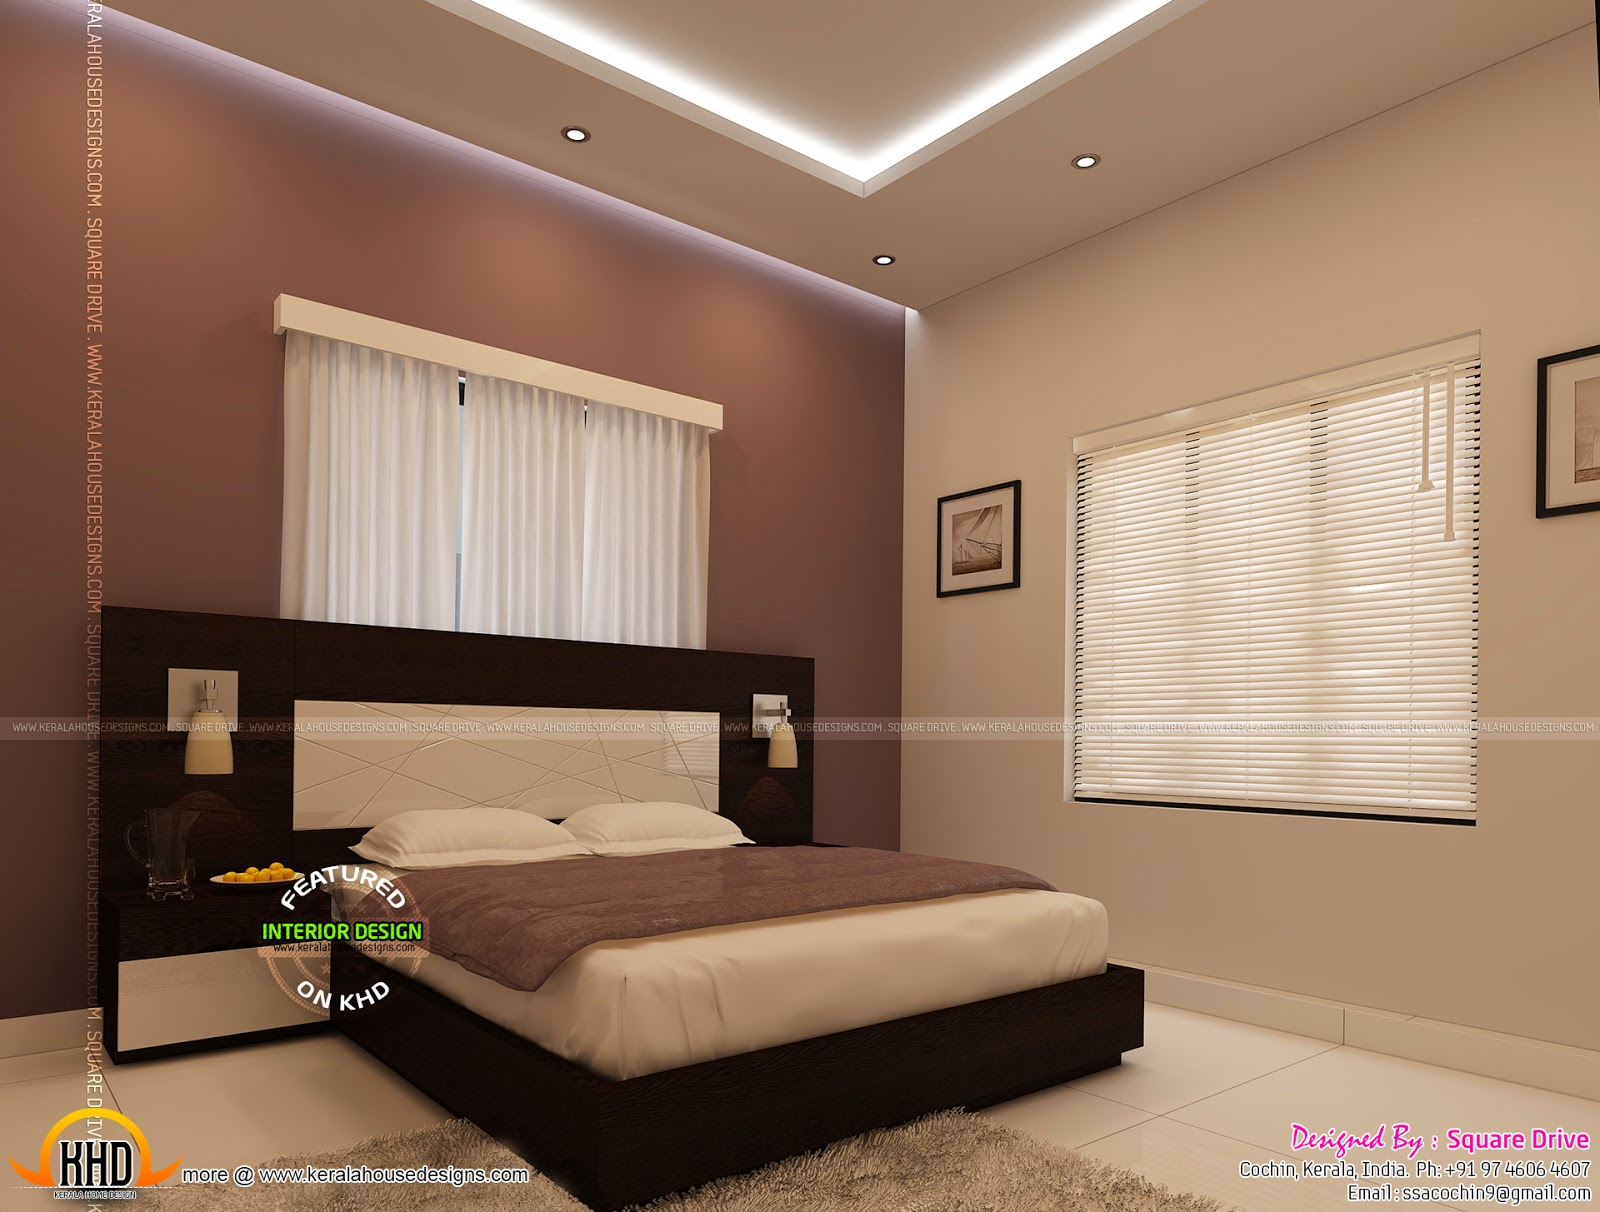 Interior Design For Bedroom Bedroom Interior Designs Kerala Home Design And Floor Plans